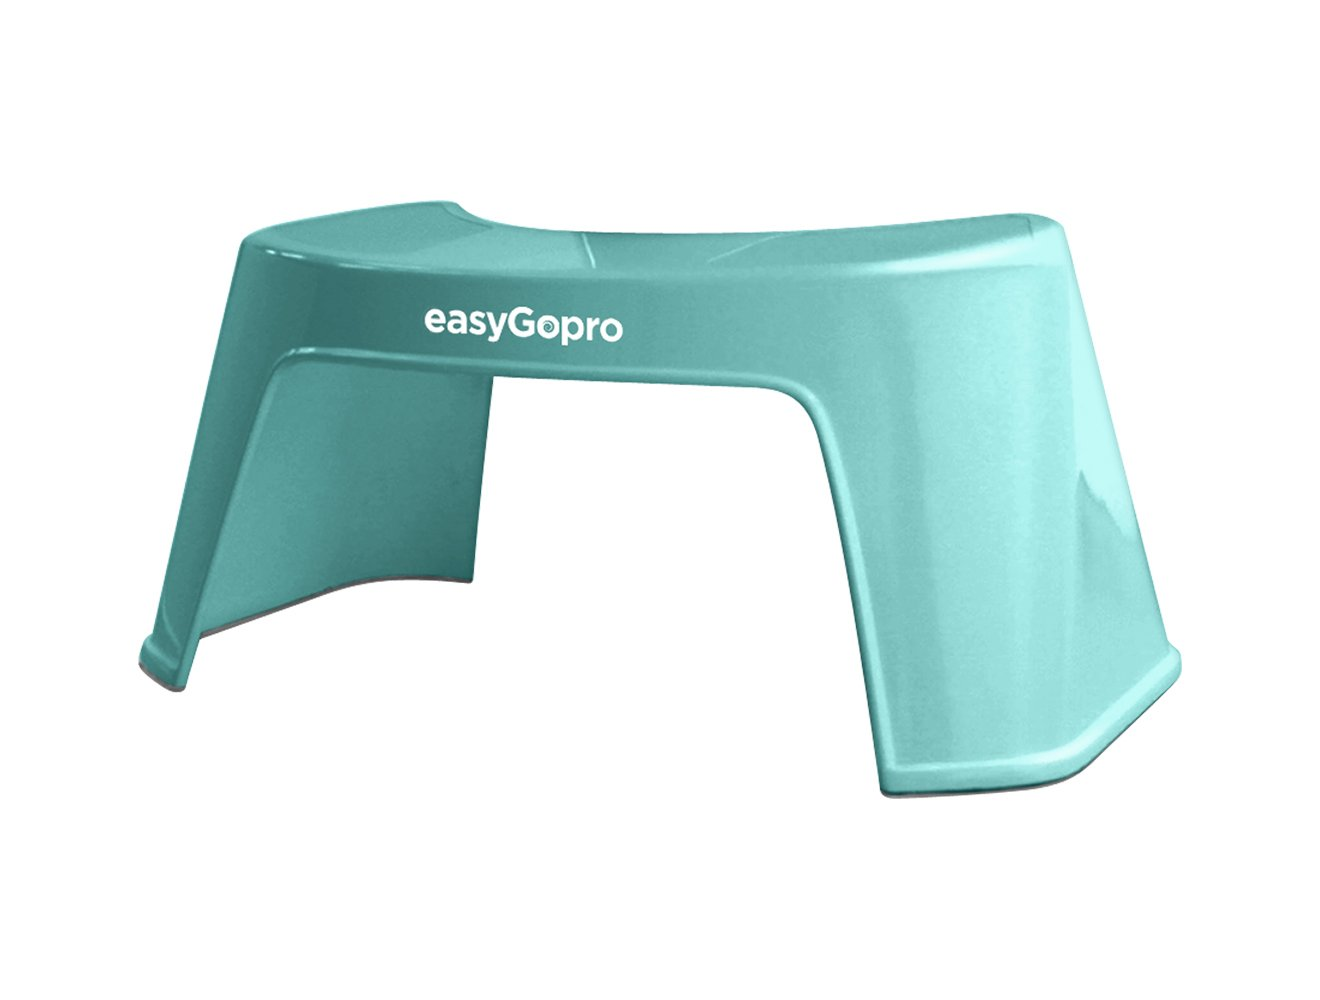 easyGopro 7.5 Most Compact Ergonomic Toilet Step for Easier Bowel Movements Gastroenterologist Recommended for All Ages - One Size Fits All - Blue M0005-EGP1B